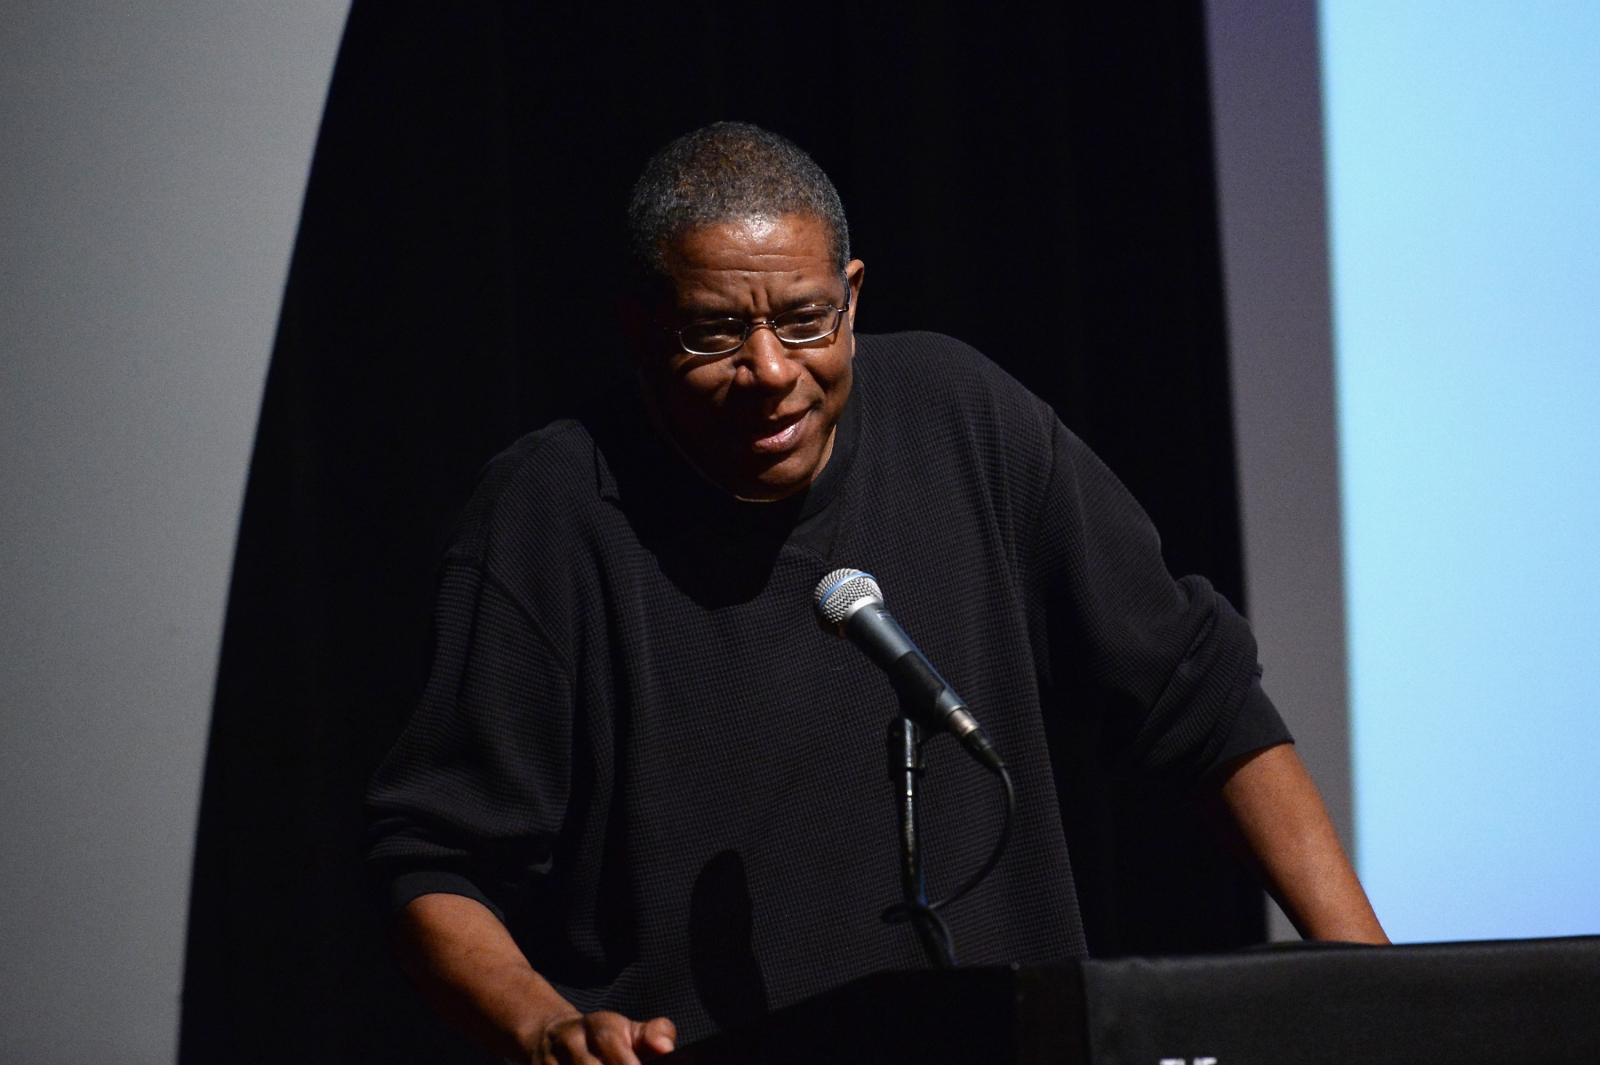 Paul Beatty is the first American writer to win the Man Booker prize with The Sellout